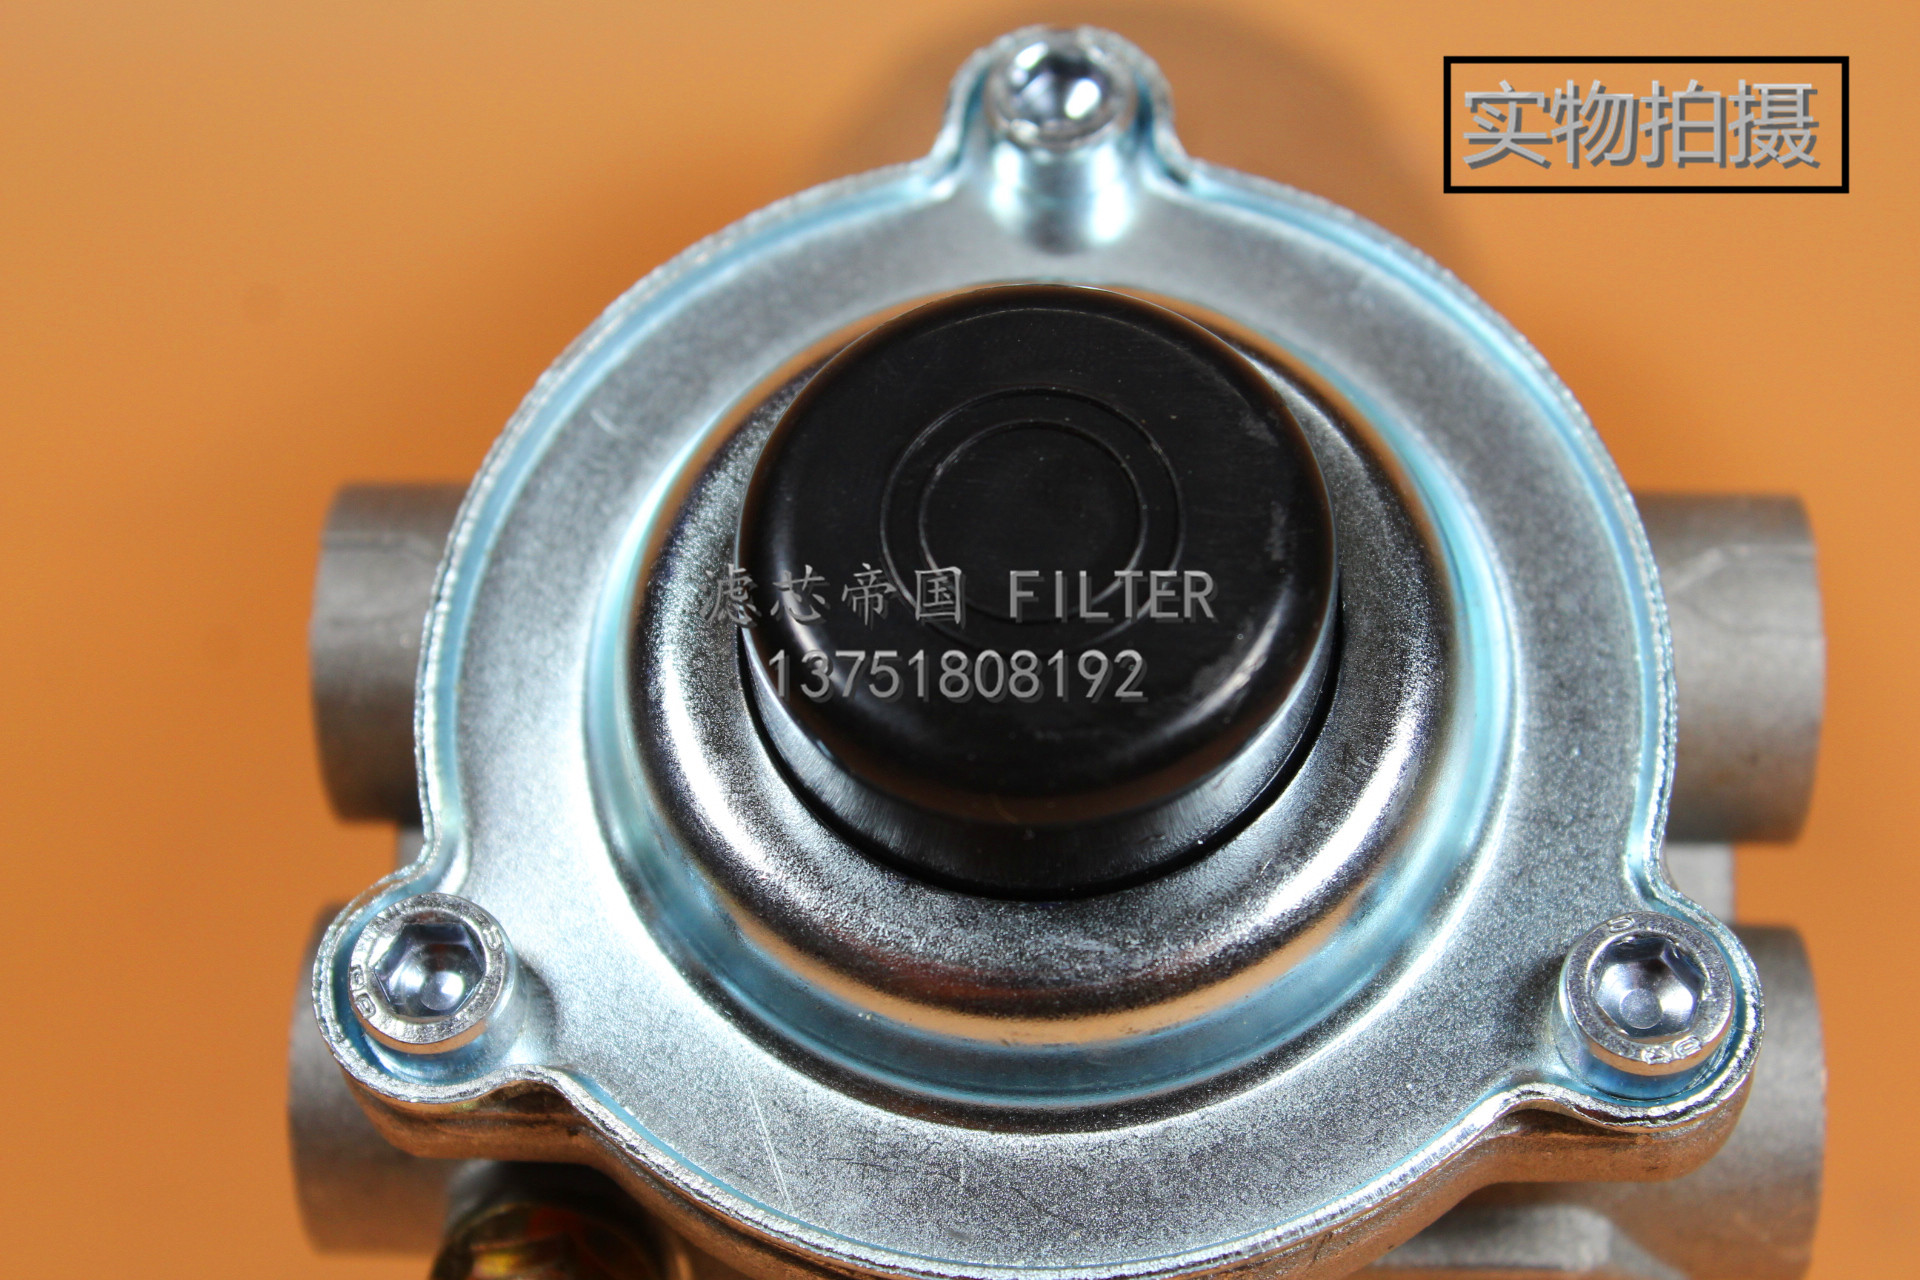 Dongfeng D28 Sharp Bell Fuel Filter Ff5236 Diesel Assembly Capt N300d5 Seat Accessories